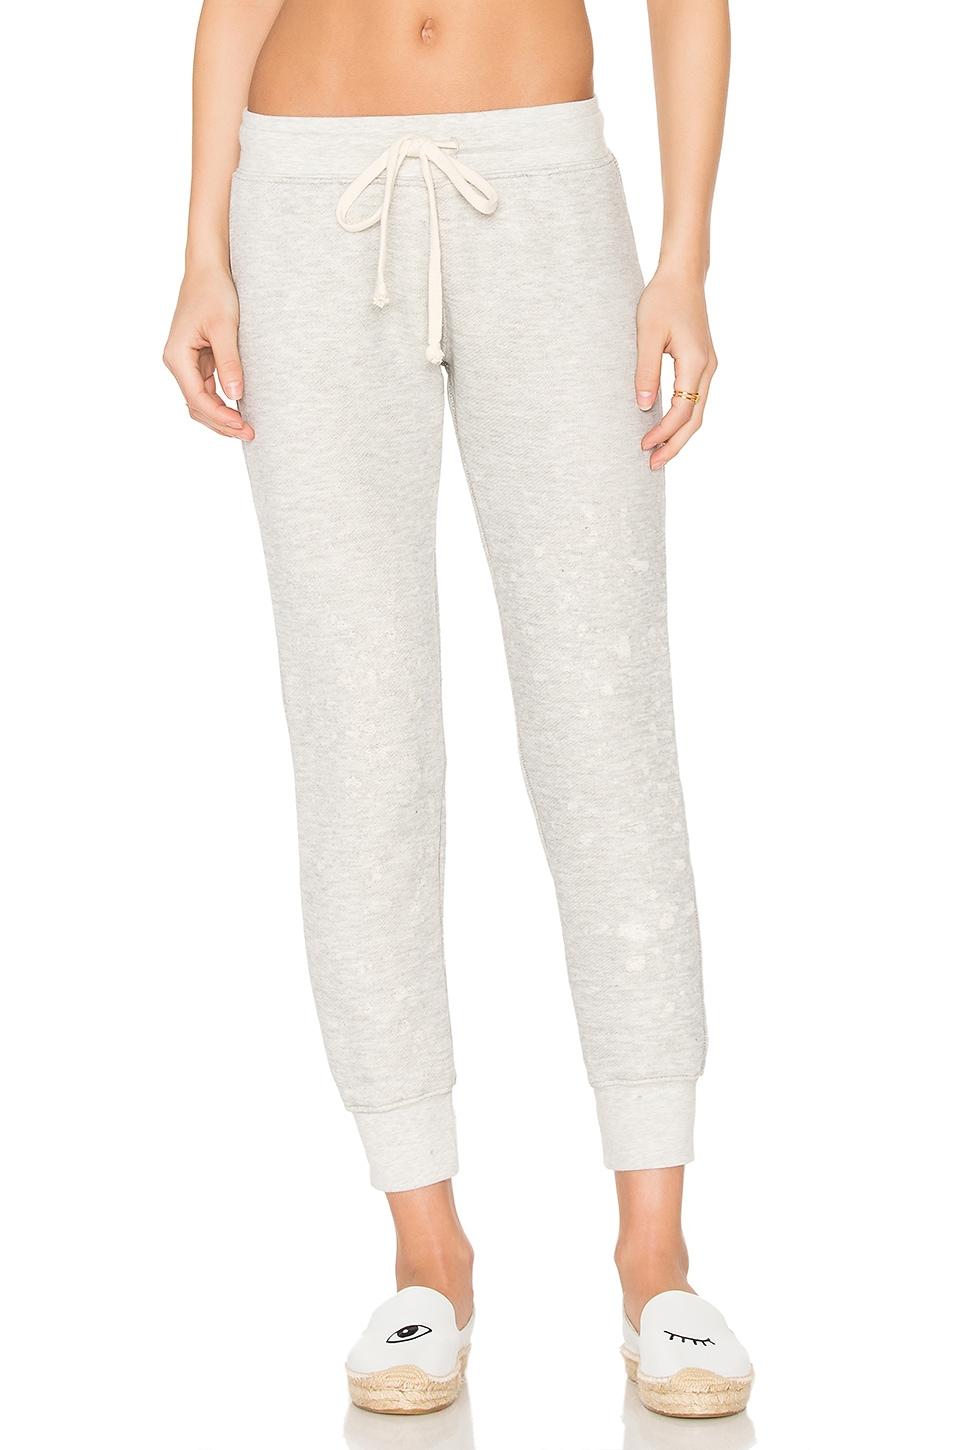 Holy Sweatpant by LNA